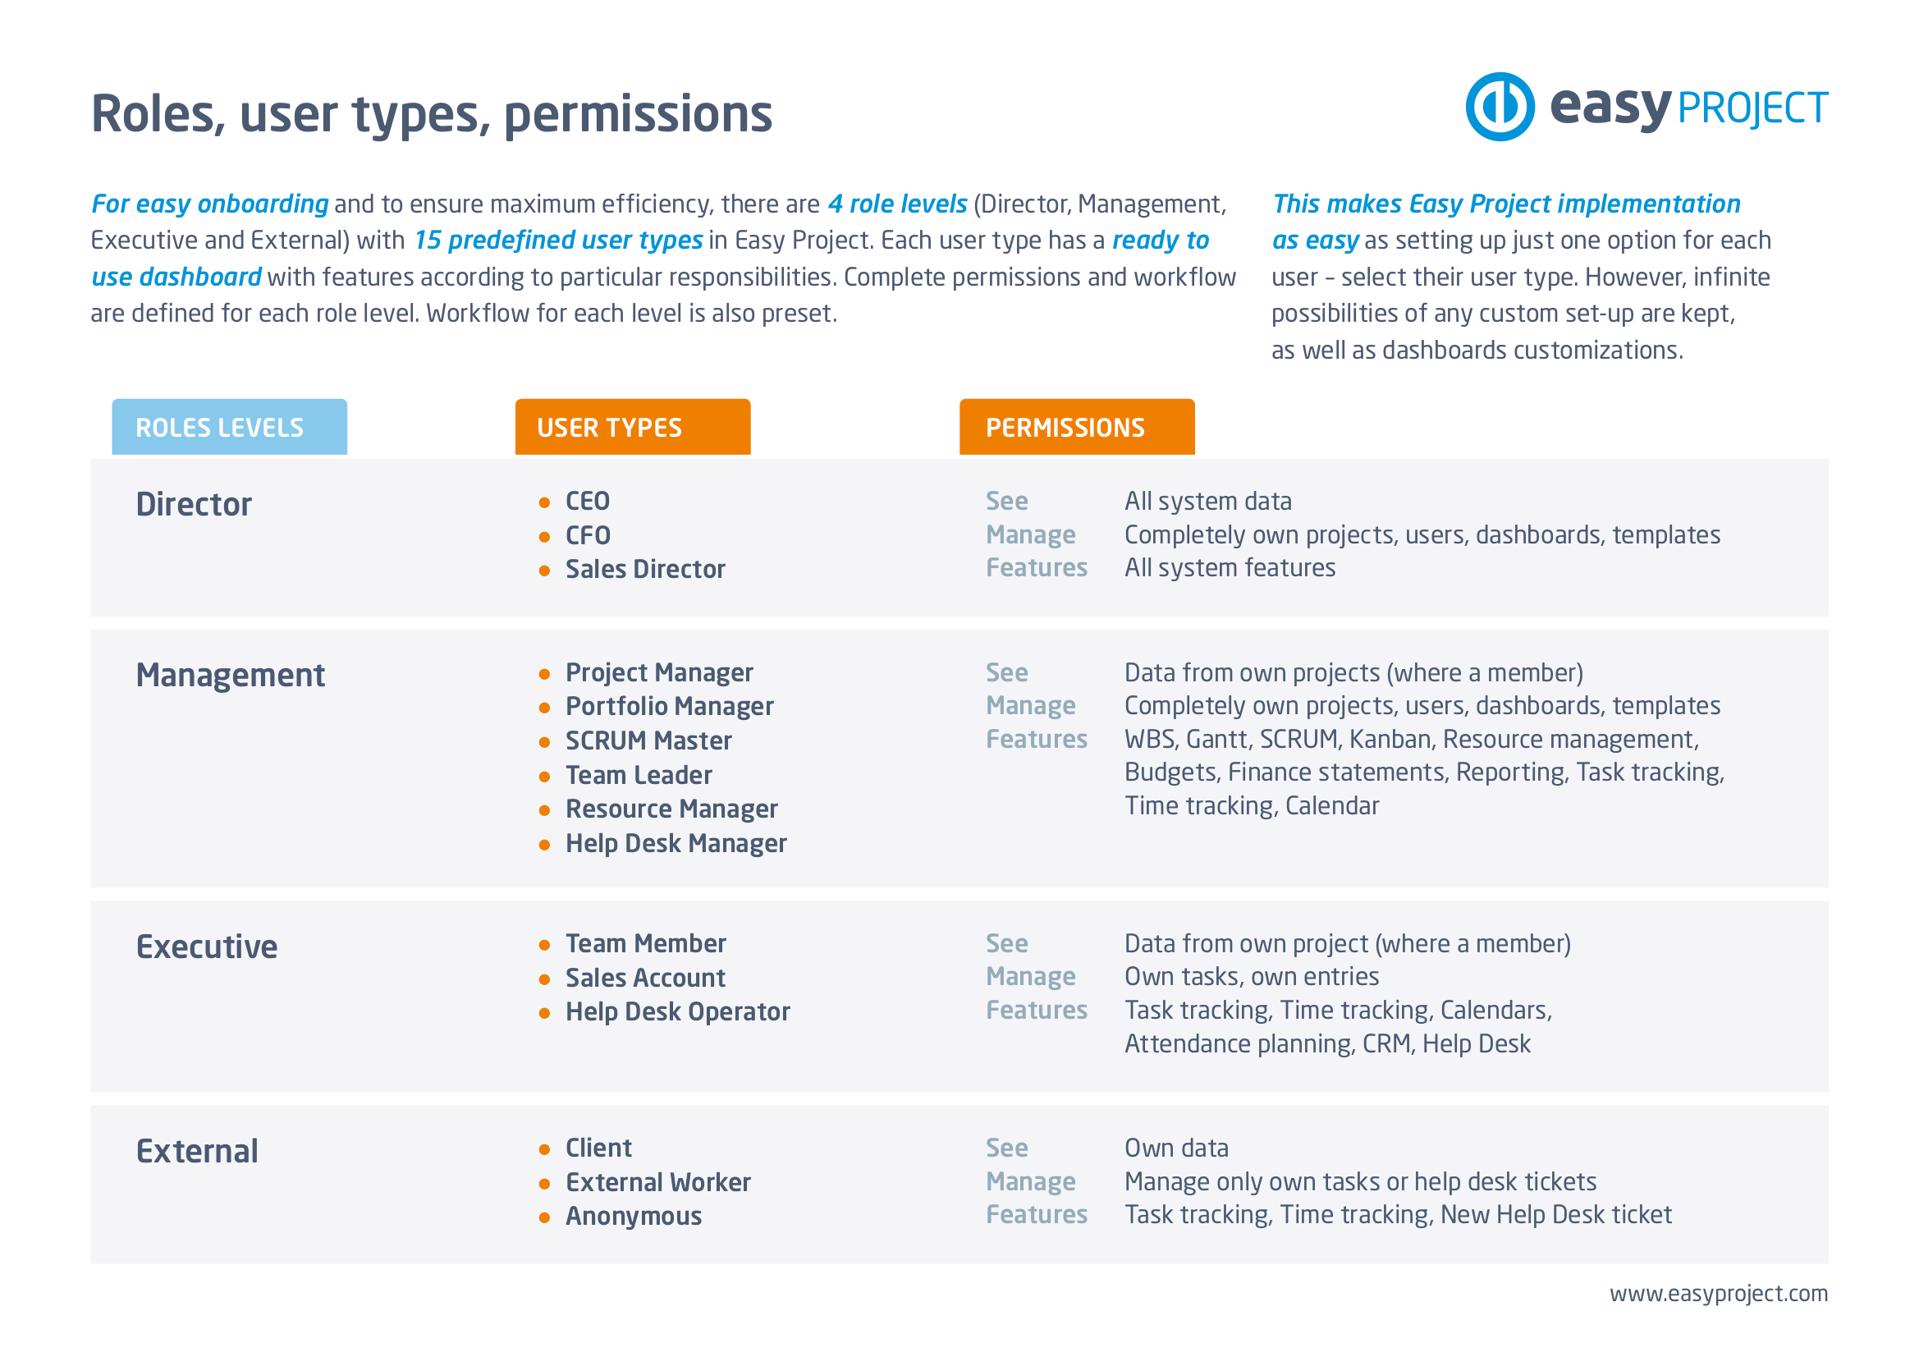 Easy Project – Global roles by user types